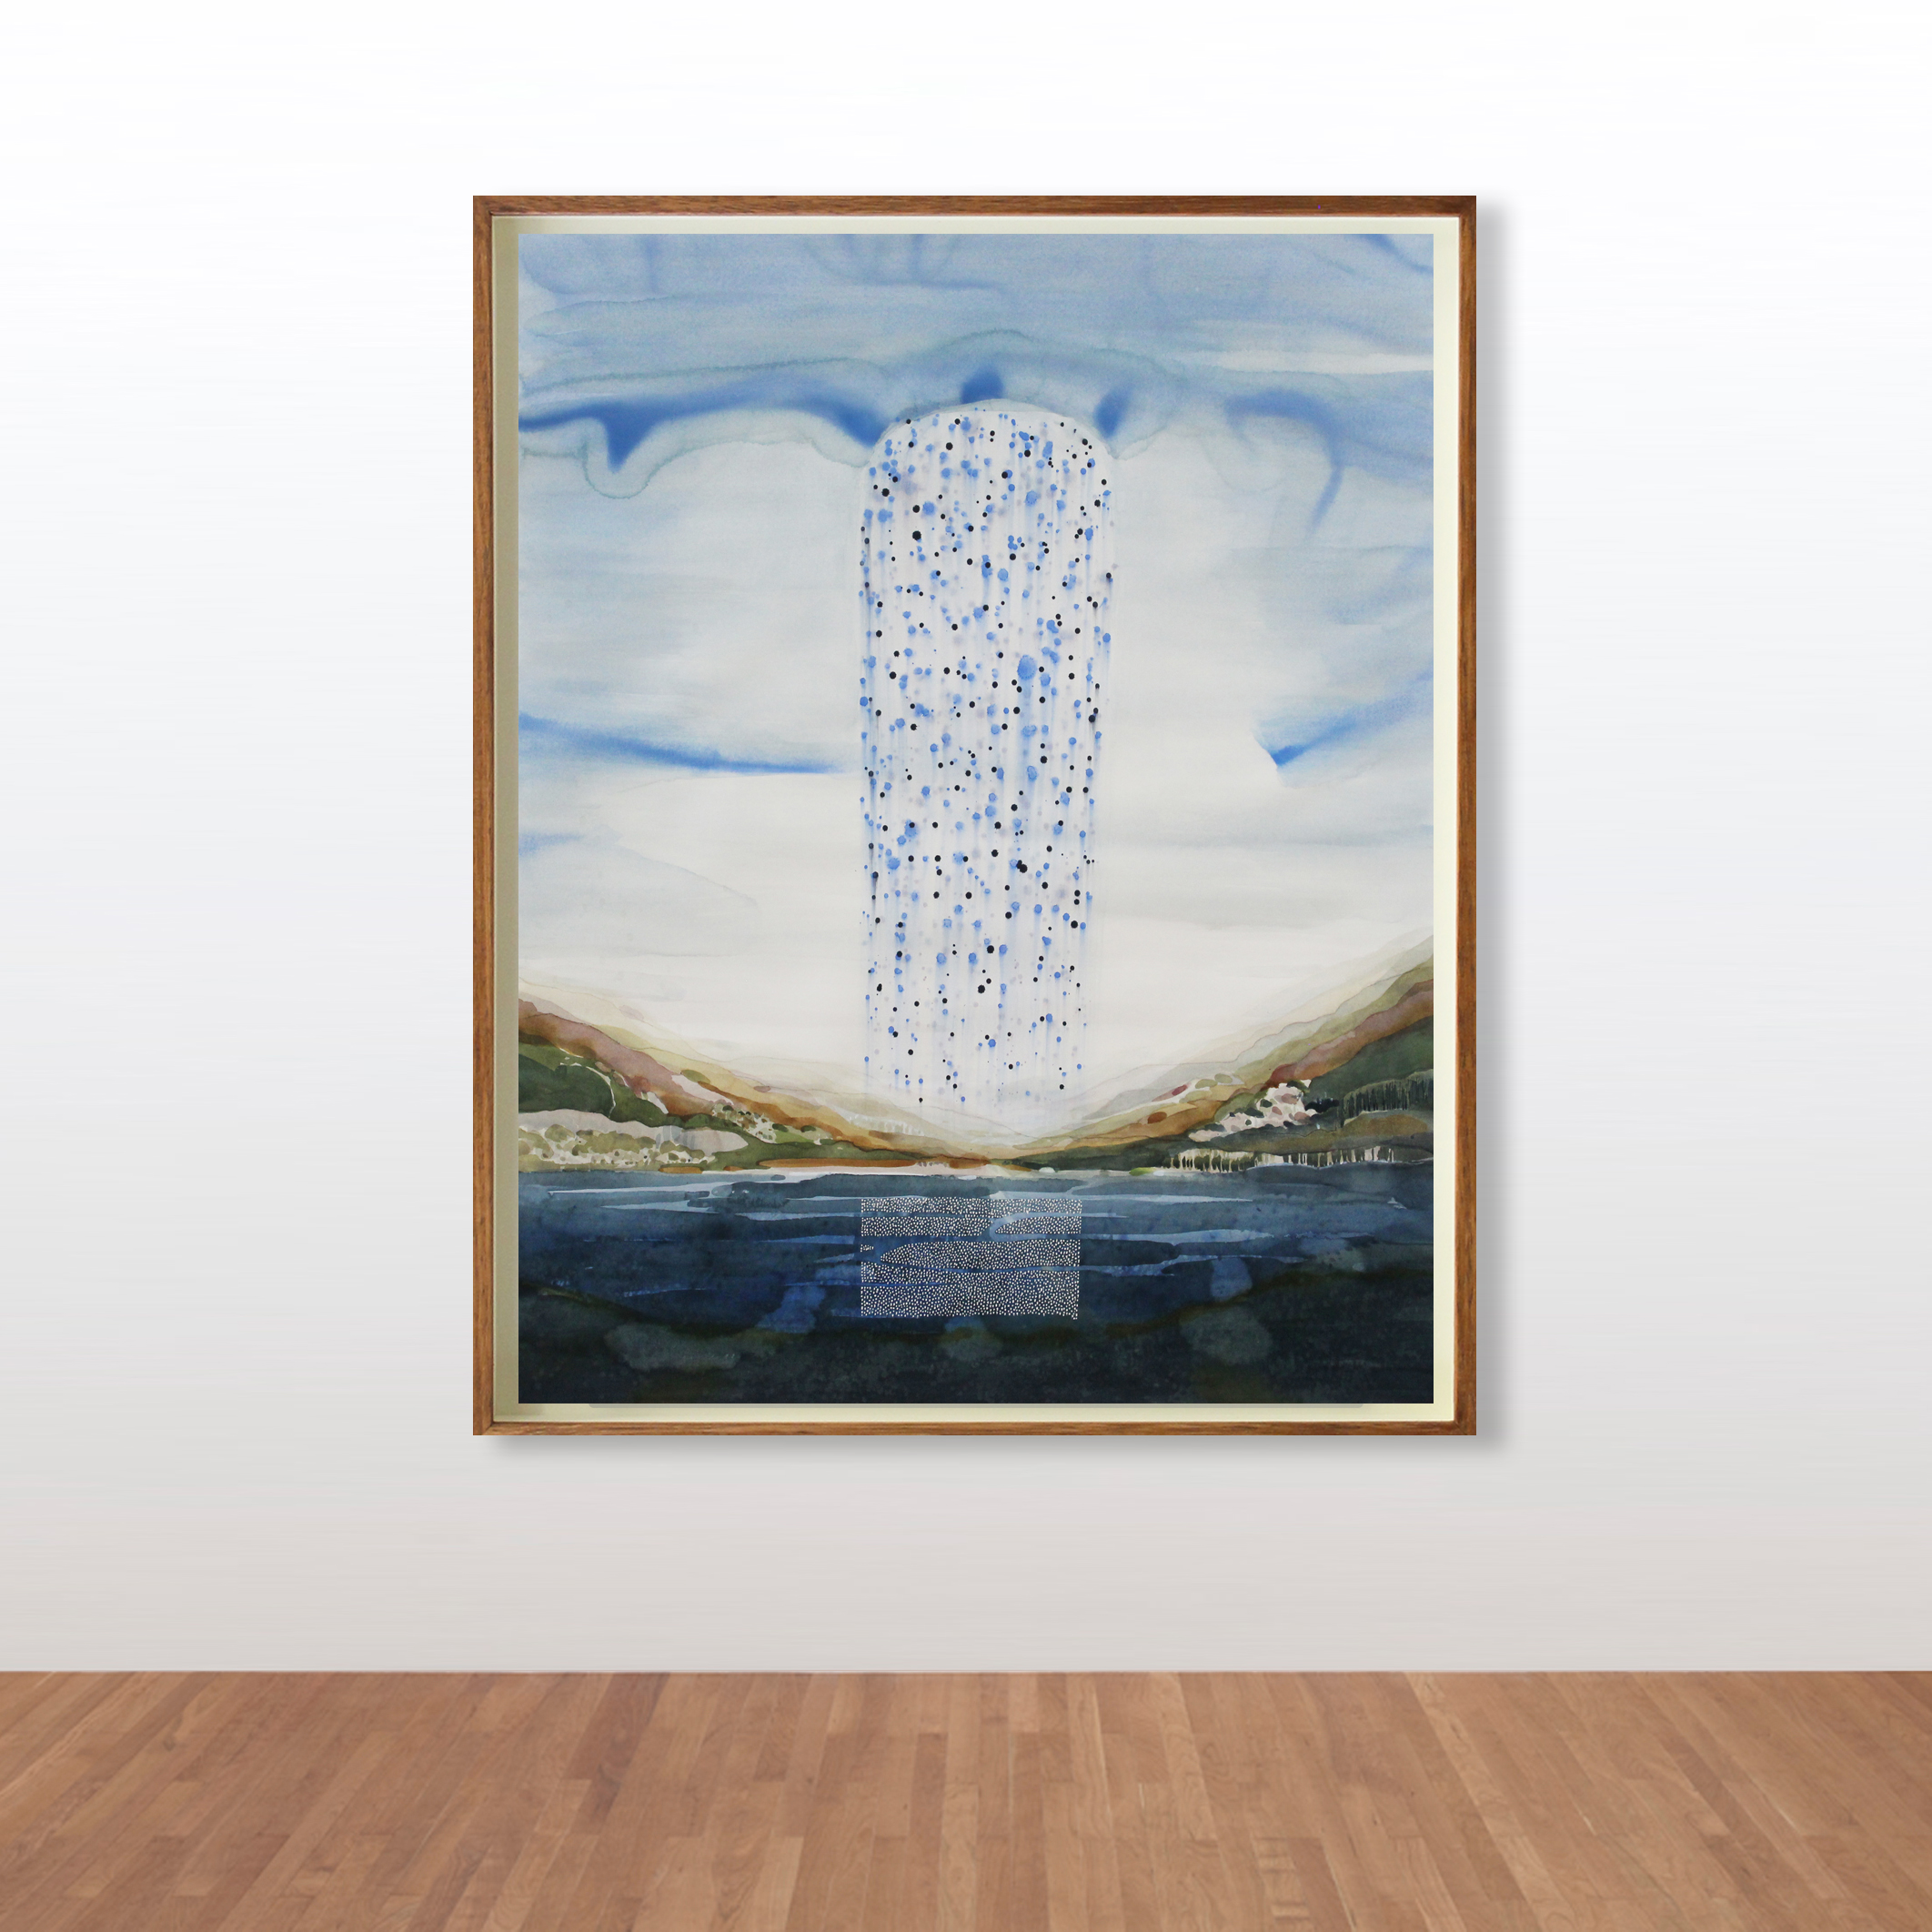 Stefan Gevers_Watercolours_Raincloud fra